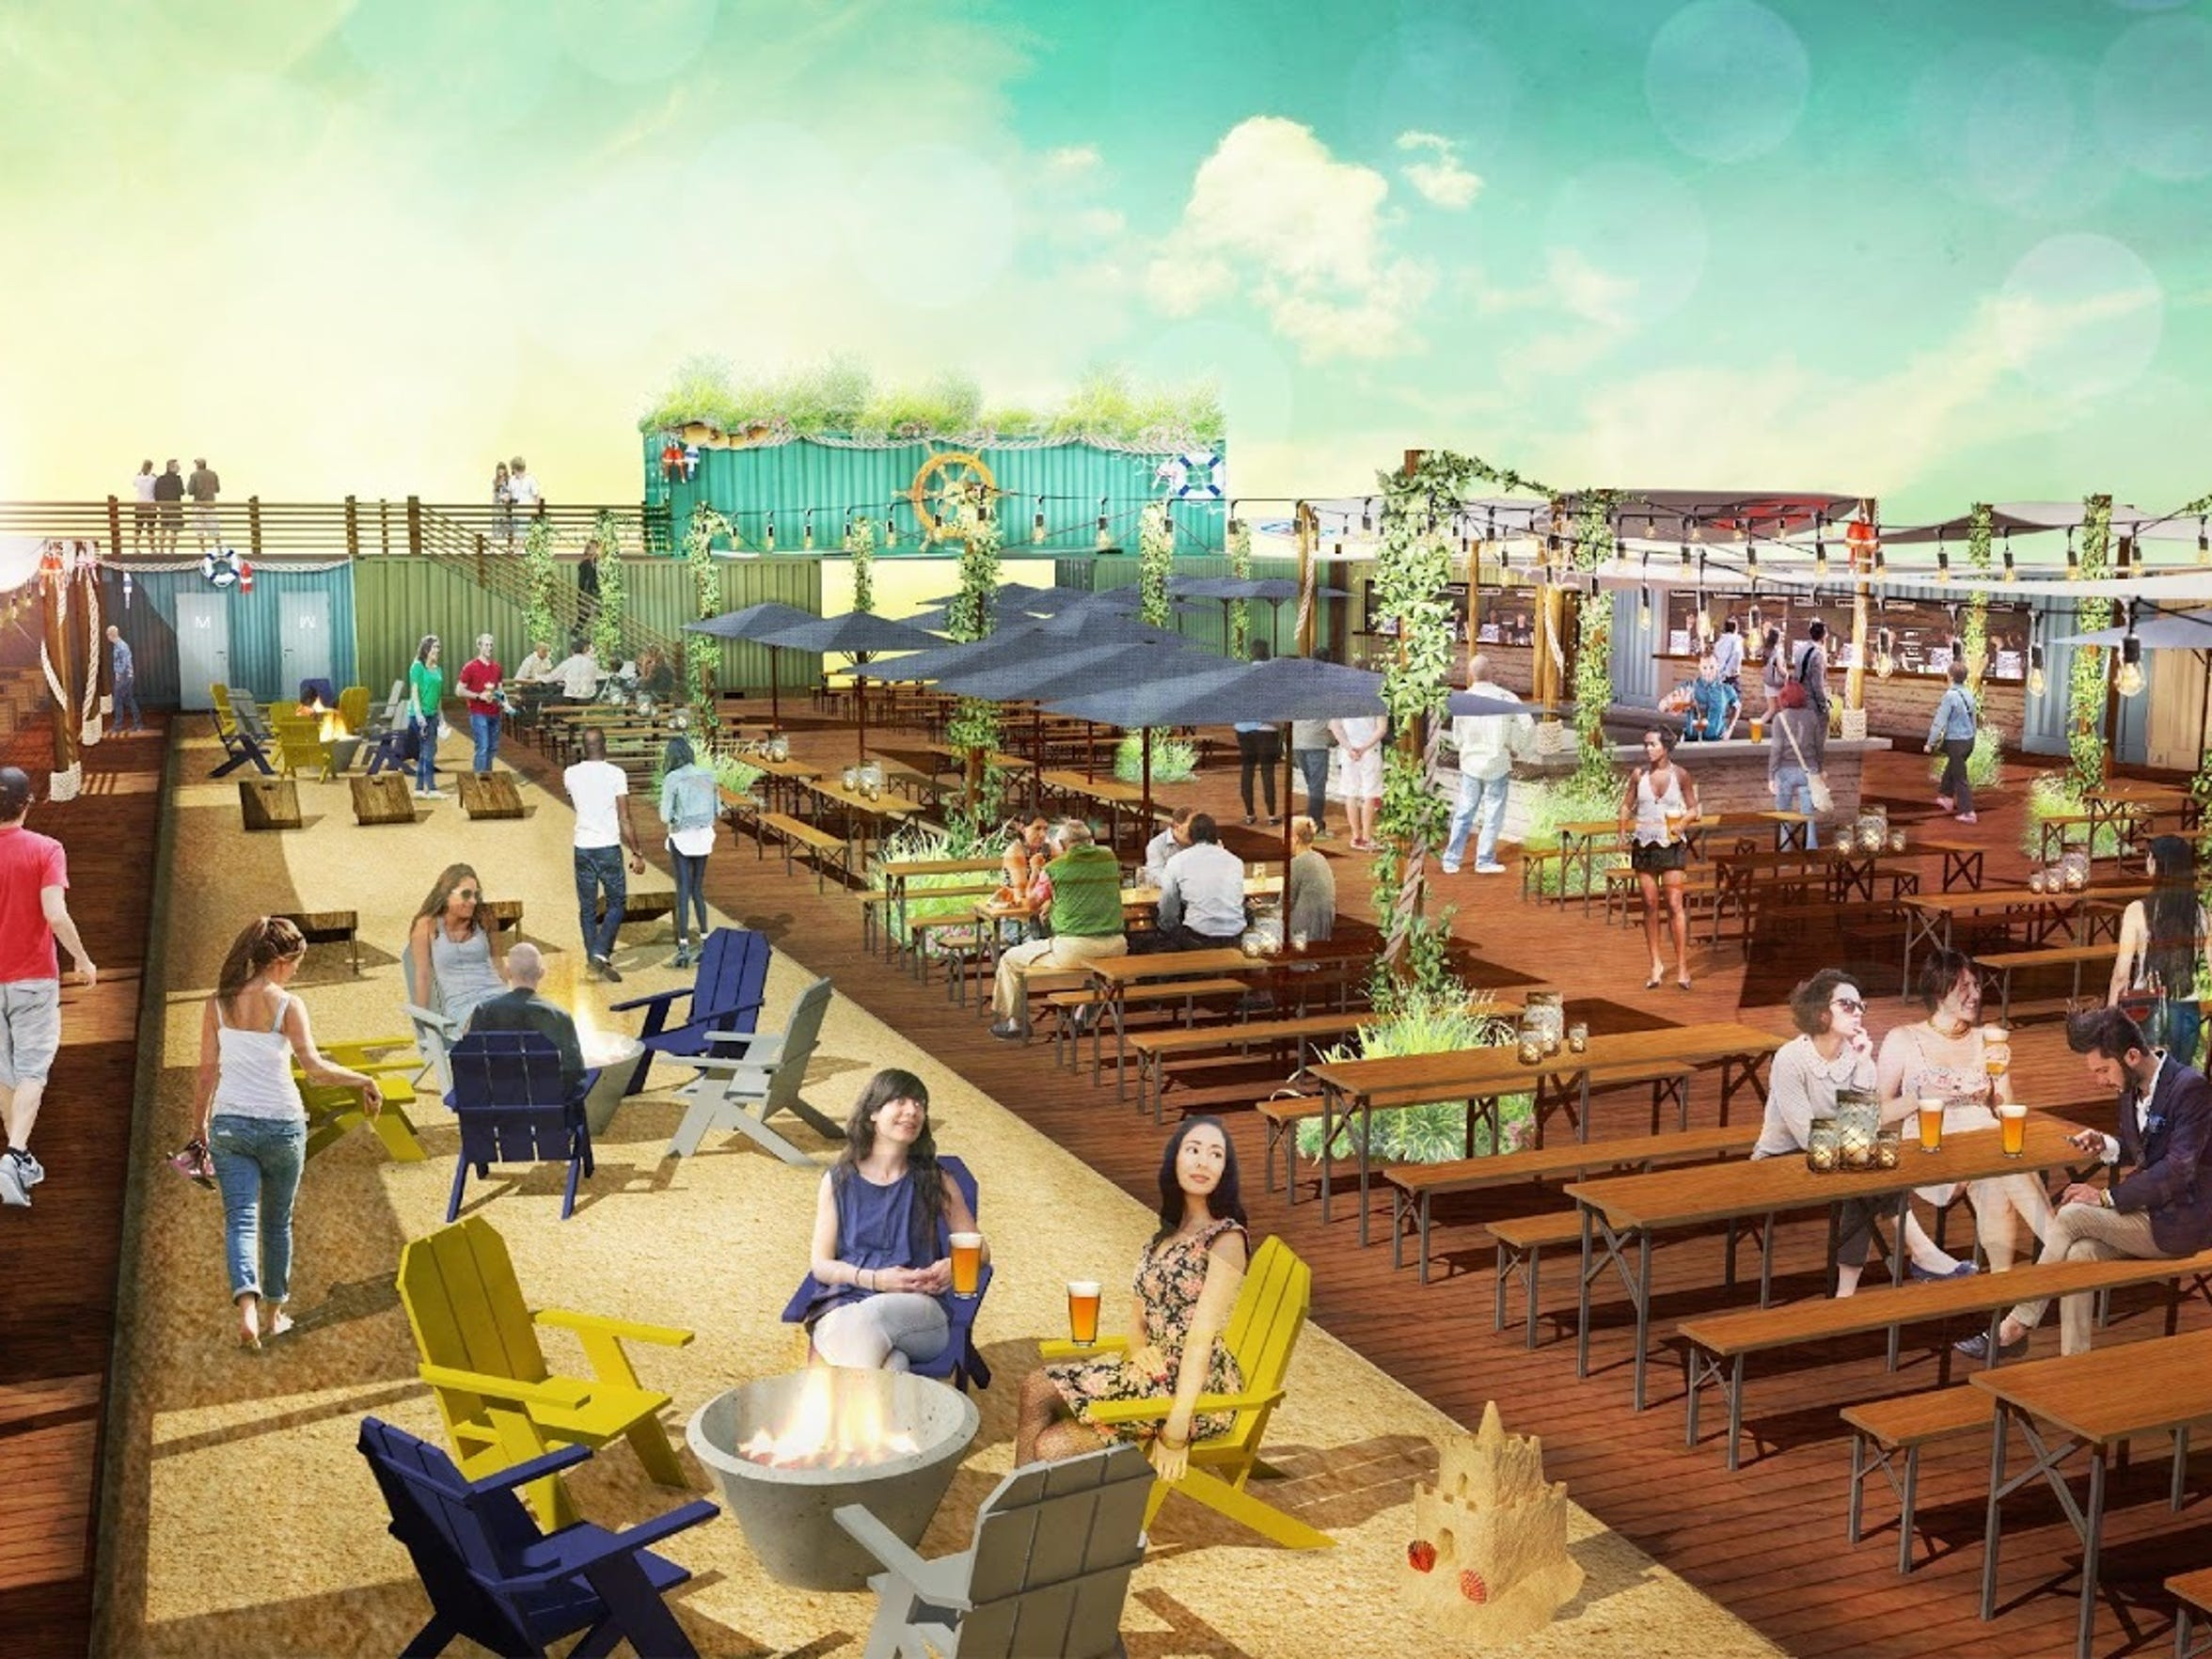 The Constitution Yards Beer Garden in Wilmington will offer craft beer, barbecue and backyard games like corn hole for all ages.